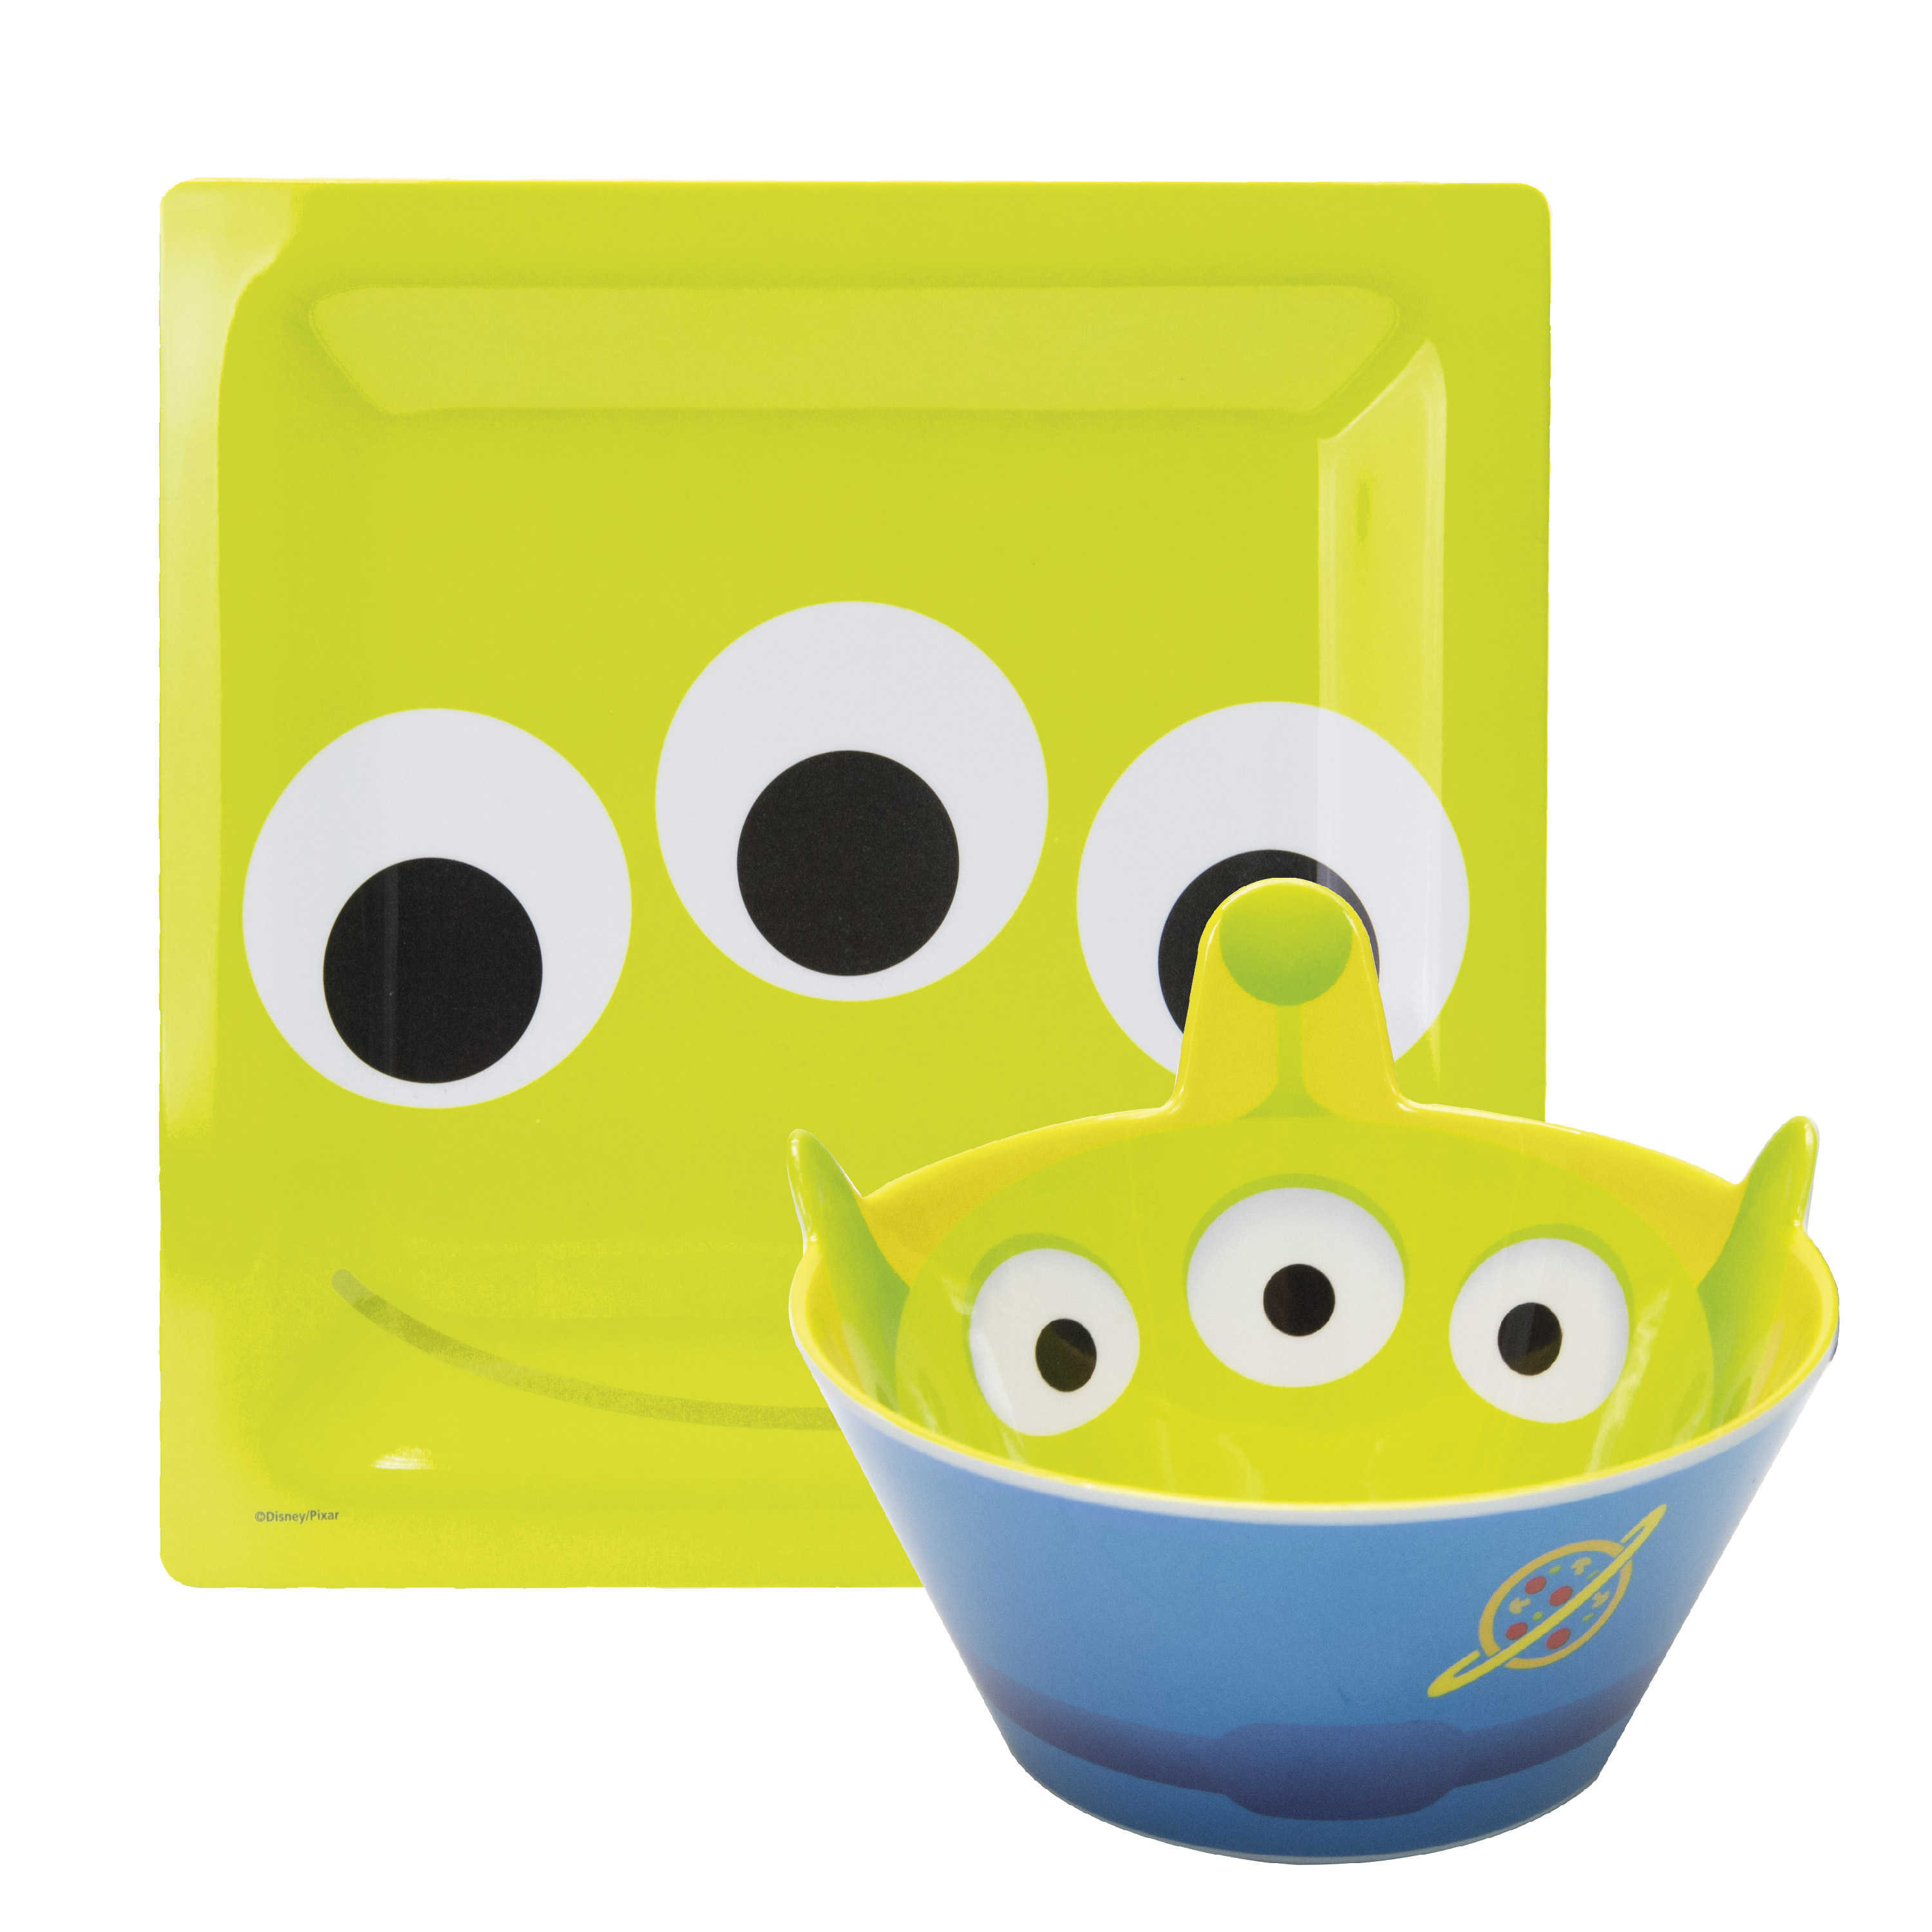 Disney and Pixar Plate and Bowl Set, Aliens, 2-piece set slideshow image 1